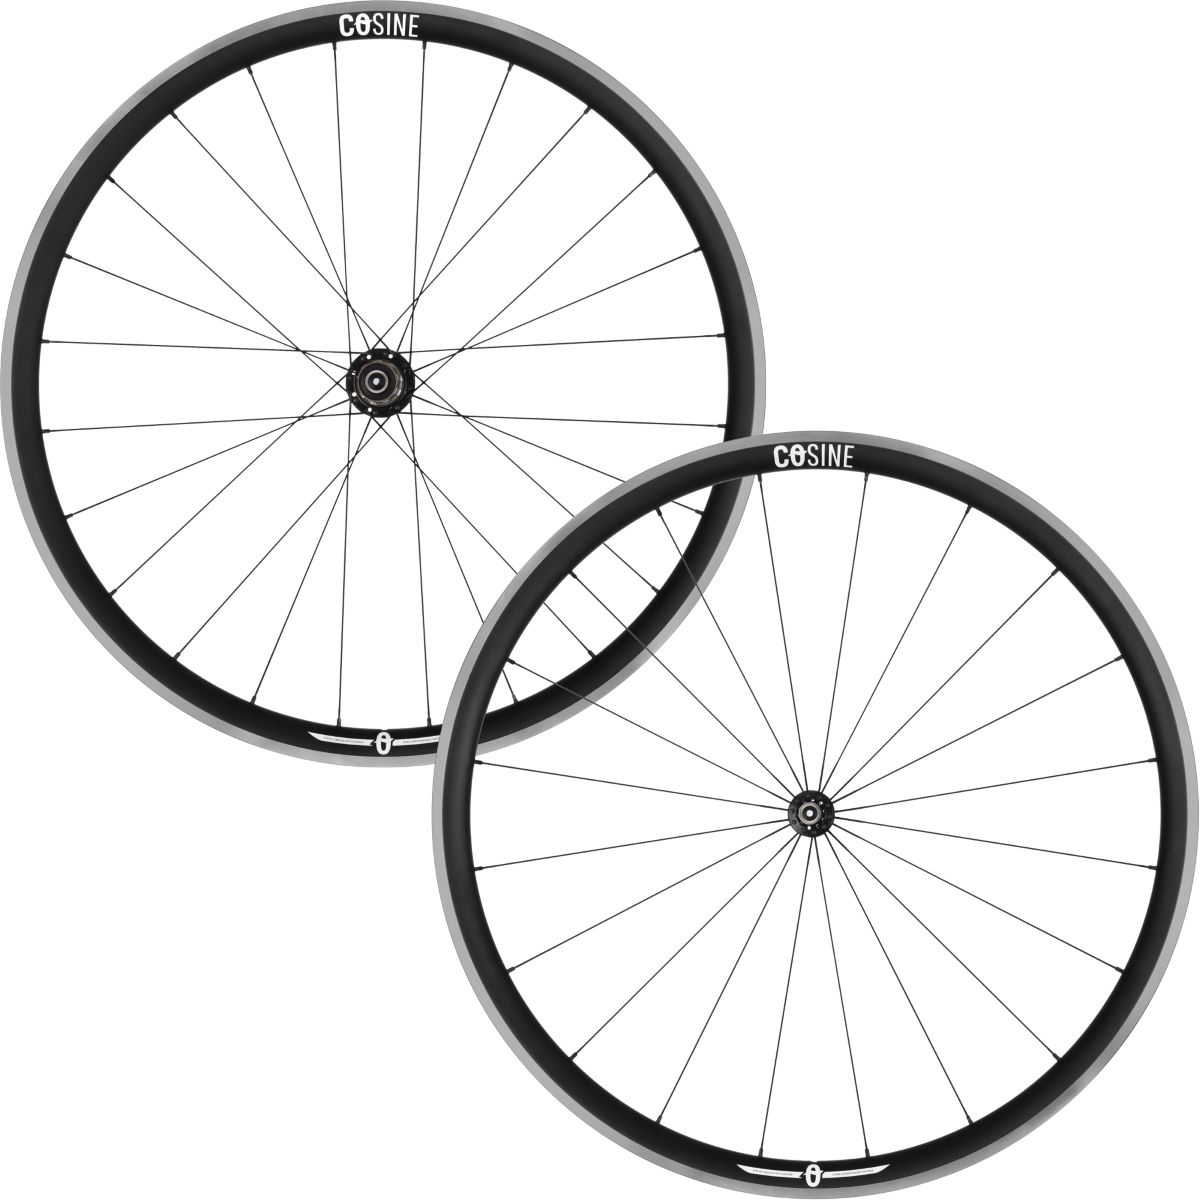 COSINE 32mm Alloy Clincher Road Wheelset   Performance Wheels